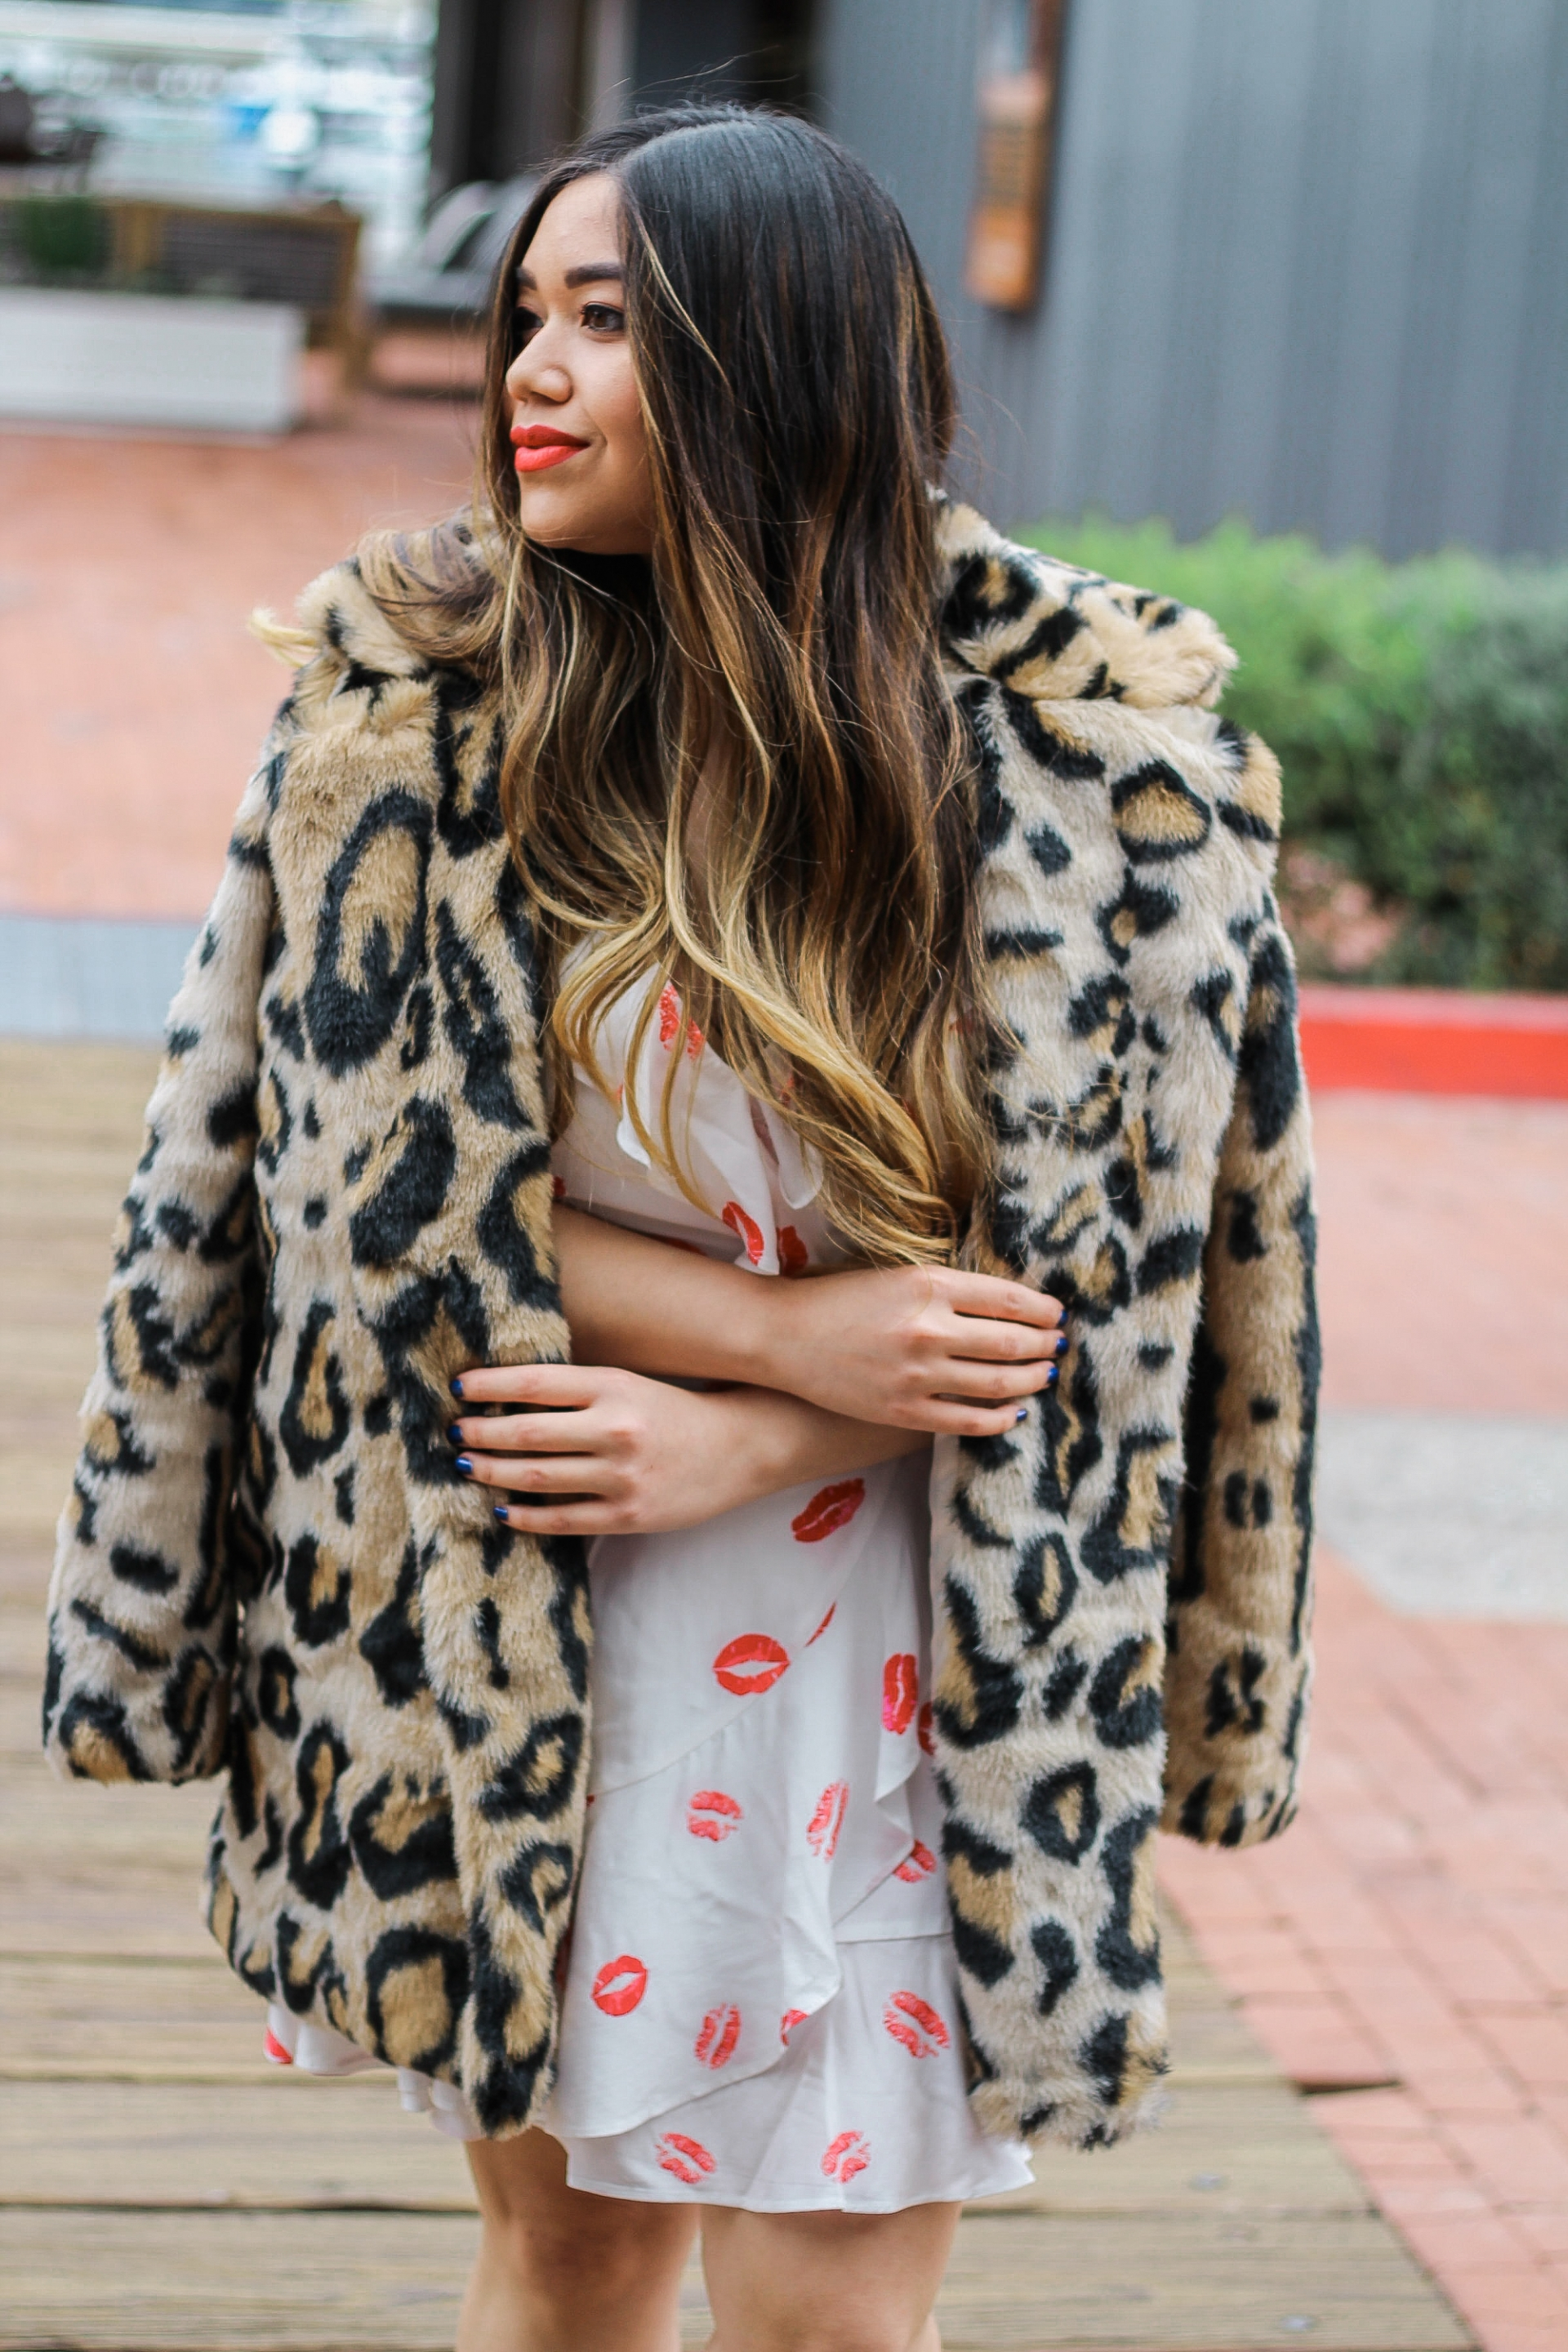 NAKD Shopbop Leopard Faux Fur Coat Forever 21 Lip Print Wrap Dress Cult Gaia Dupe Bamboo Ark Bag